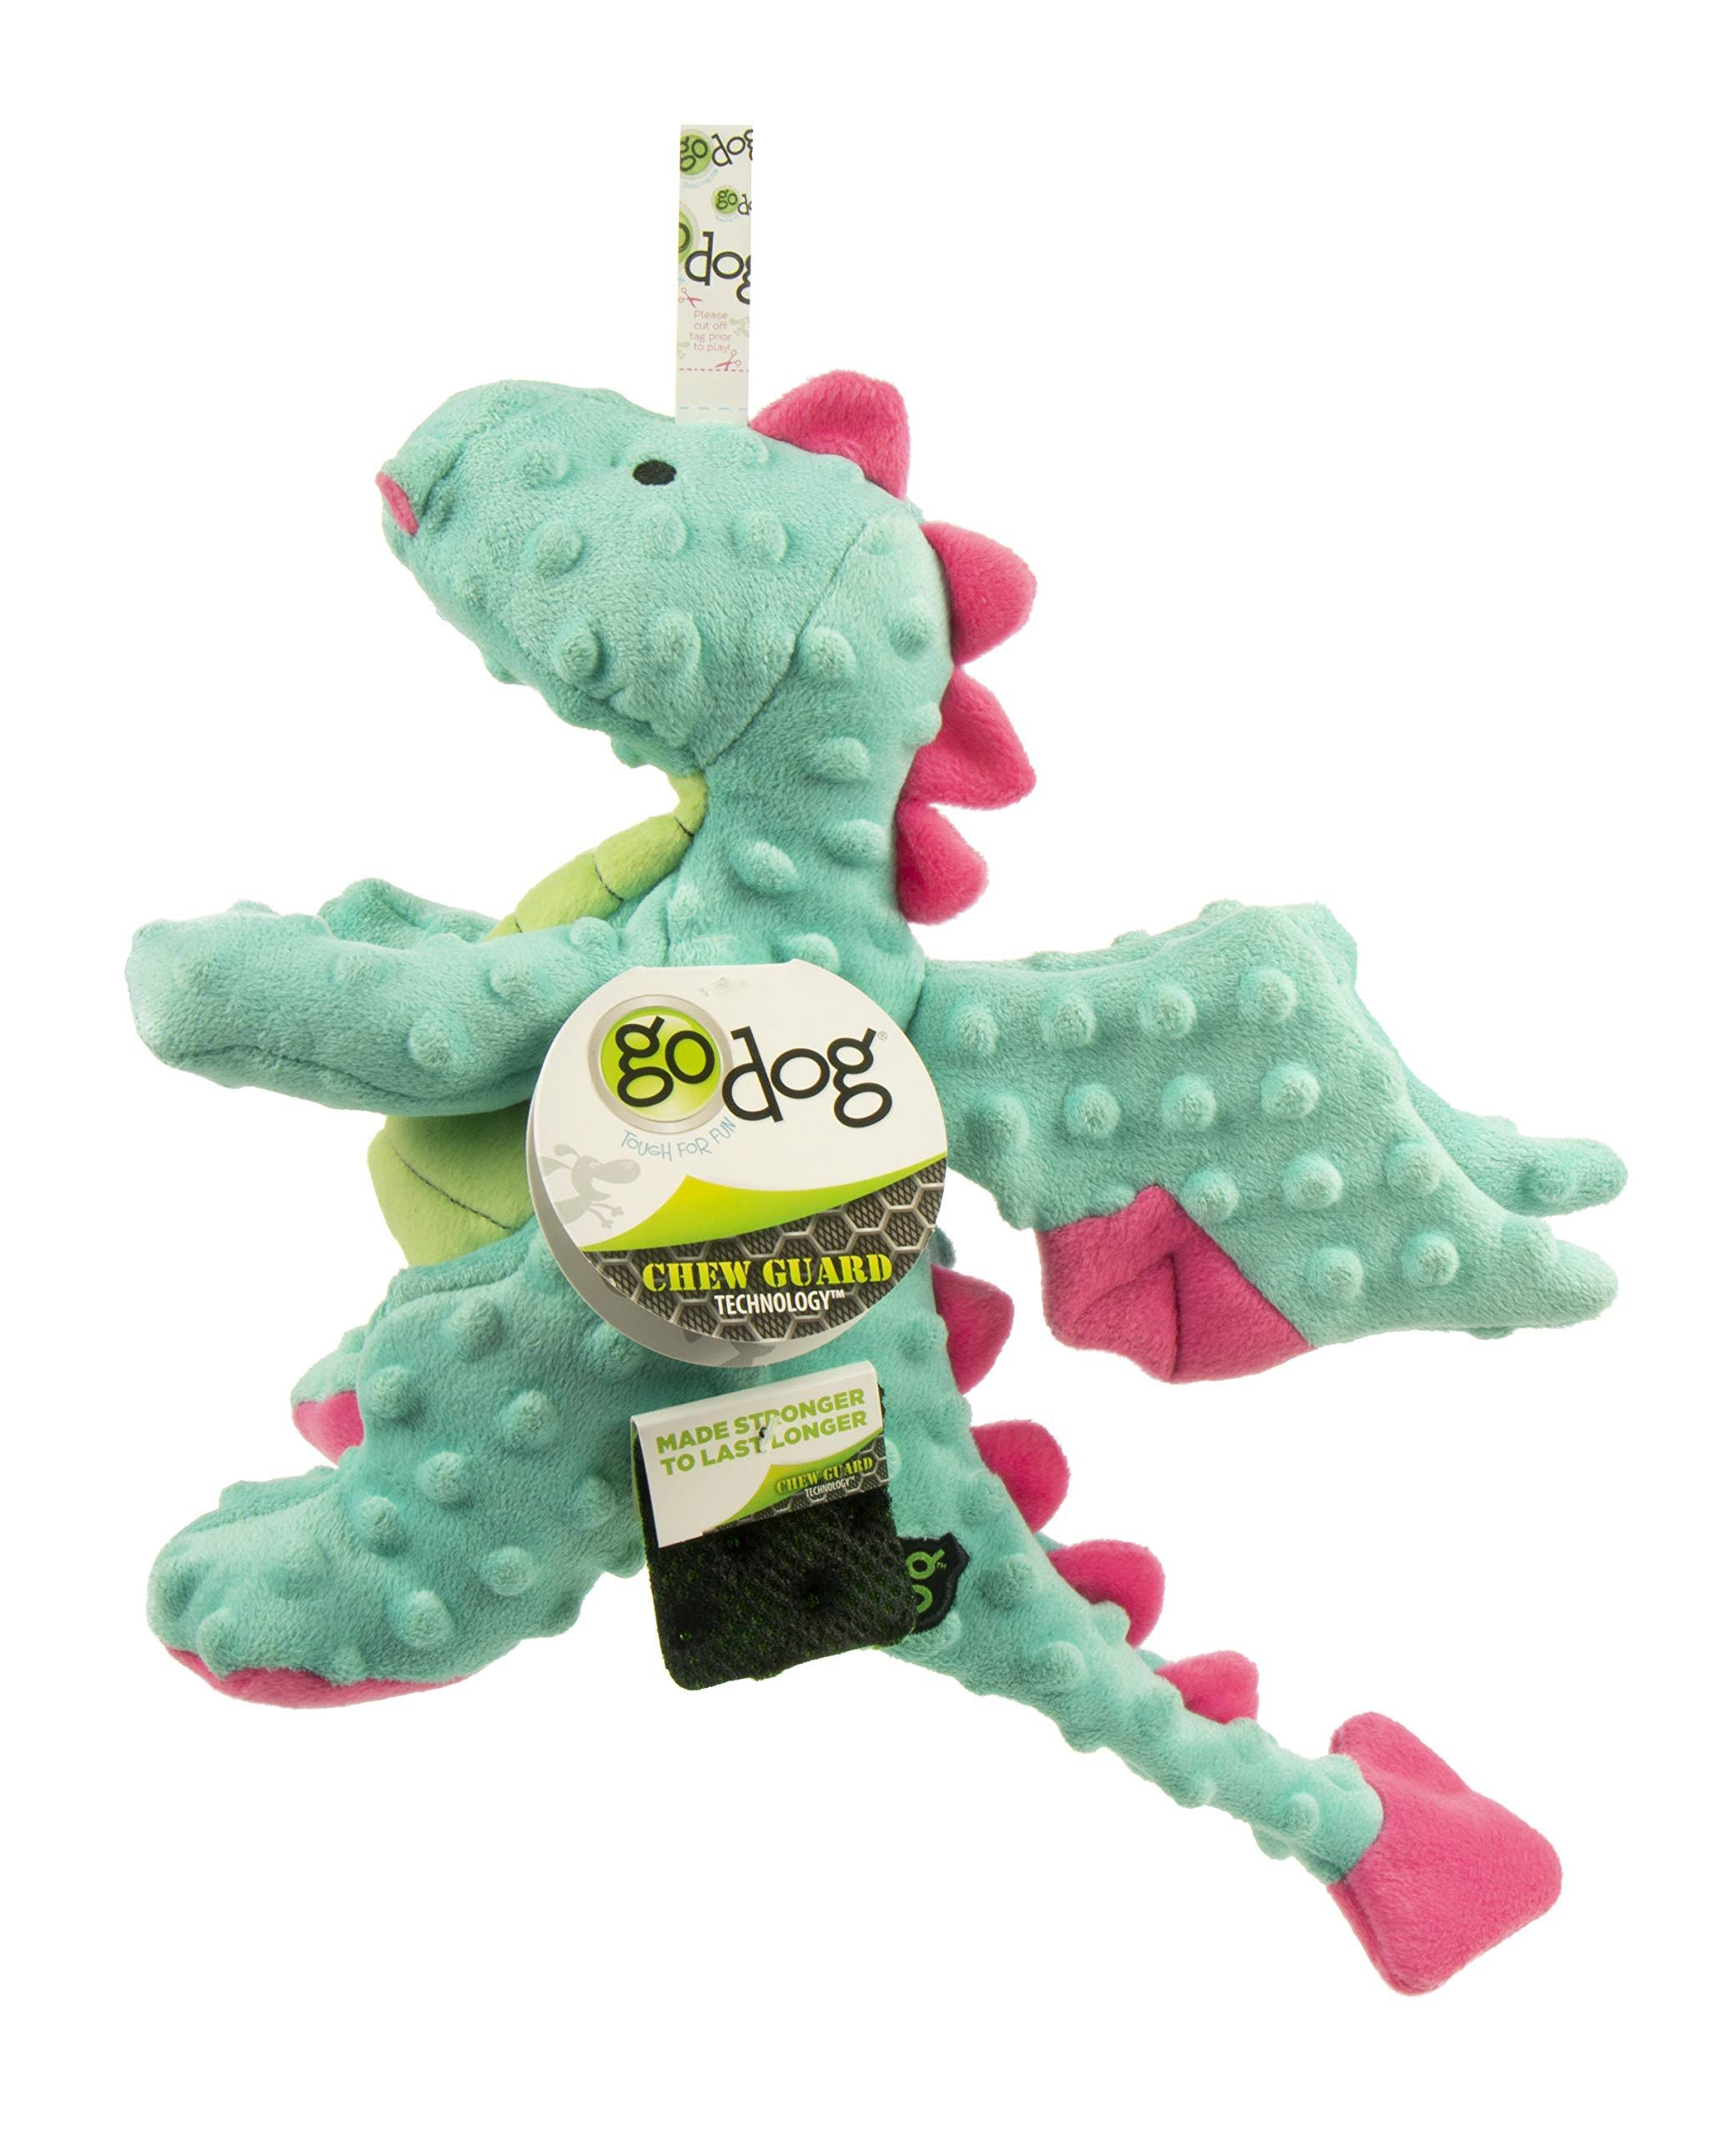 Godog Dragons Chew Guard Plush Dog Toy, Seaform, Large